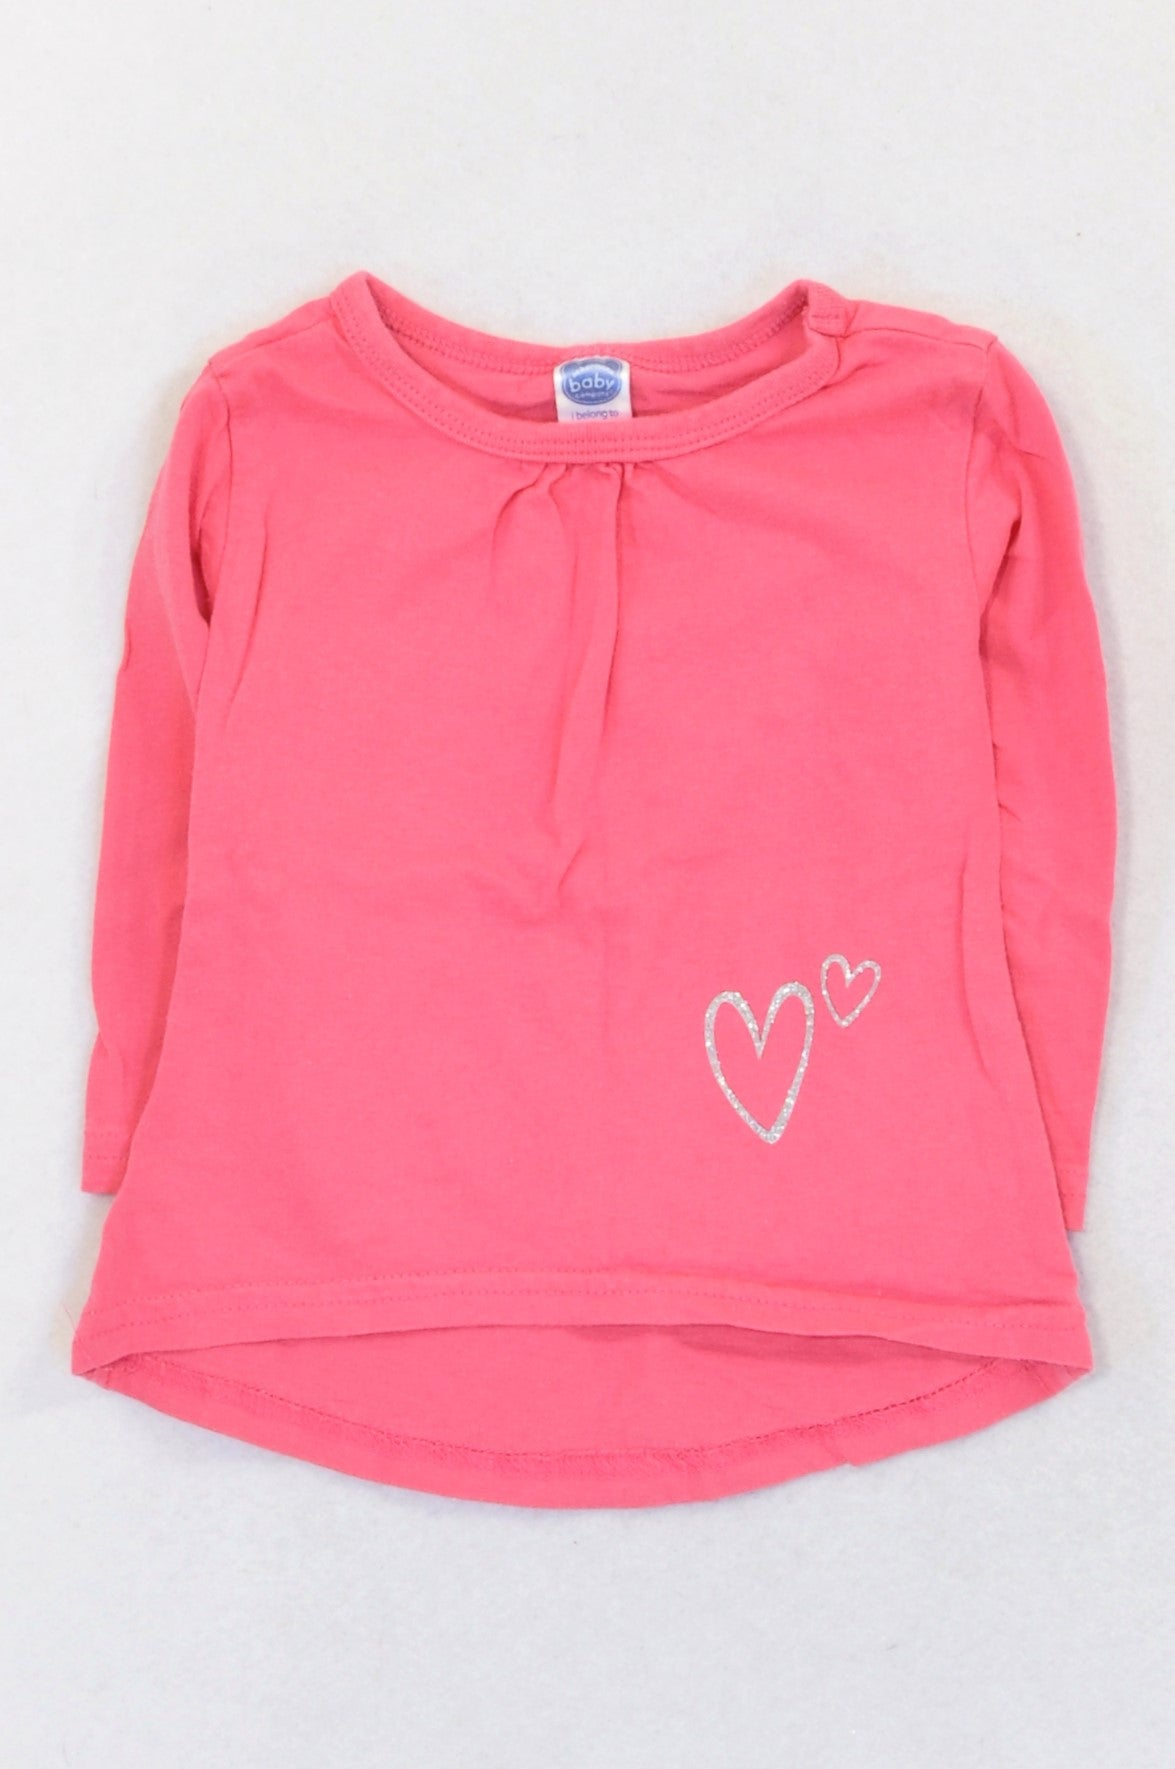 Ackermans Pink Silver Heart High Low T-shirt Girls 3-6 months